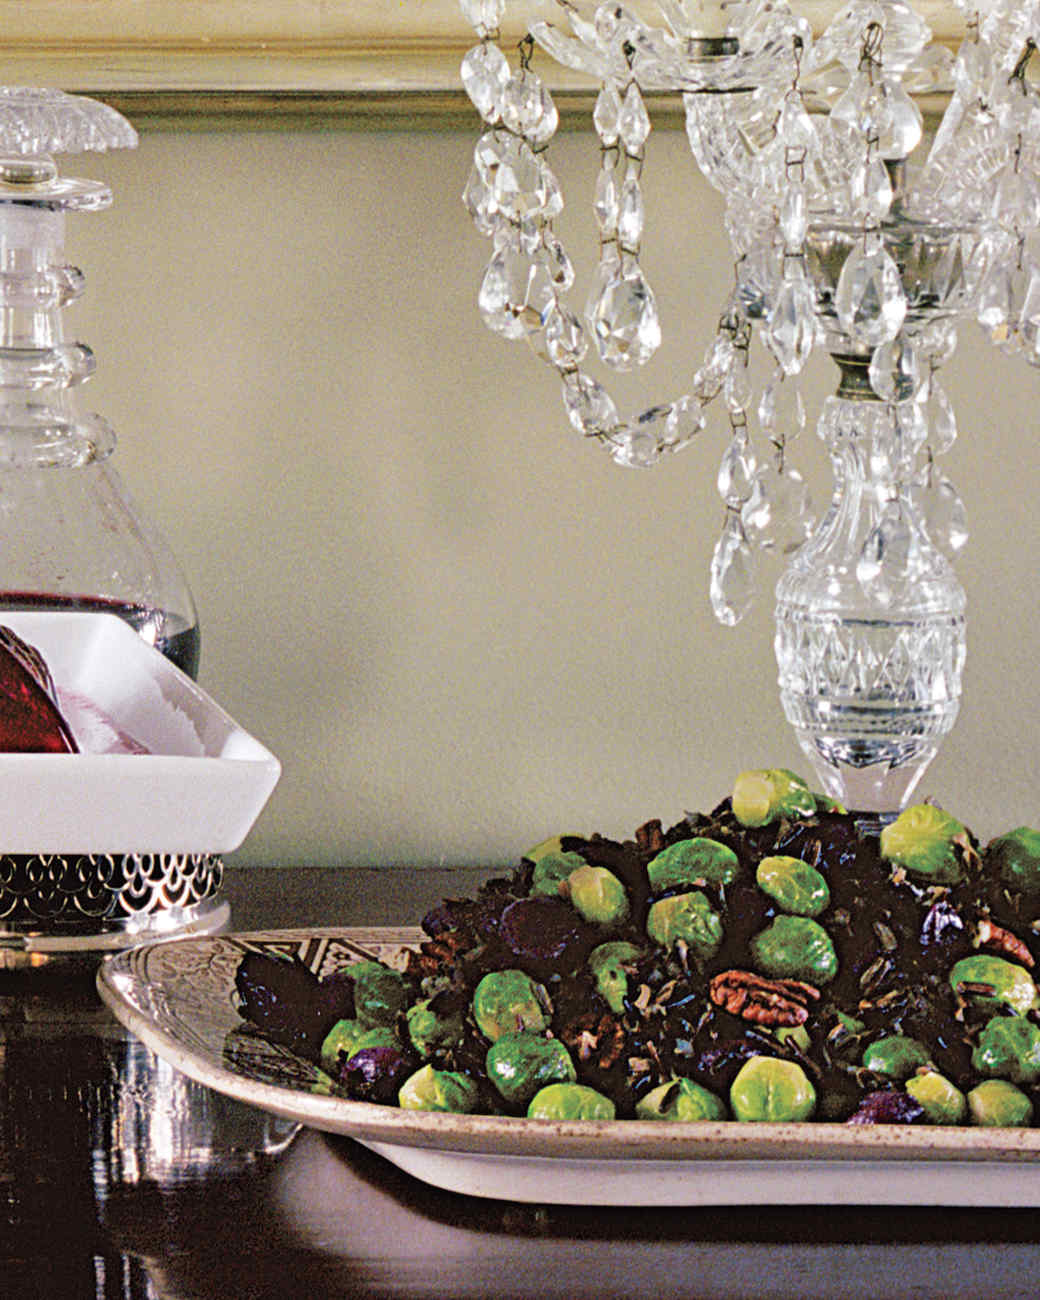 from-my-home-brussel-sprouts-ma104679.jpg